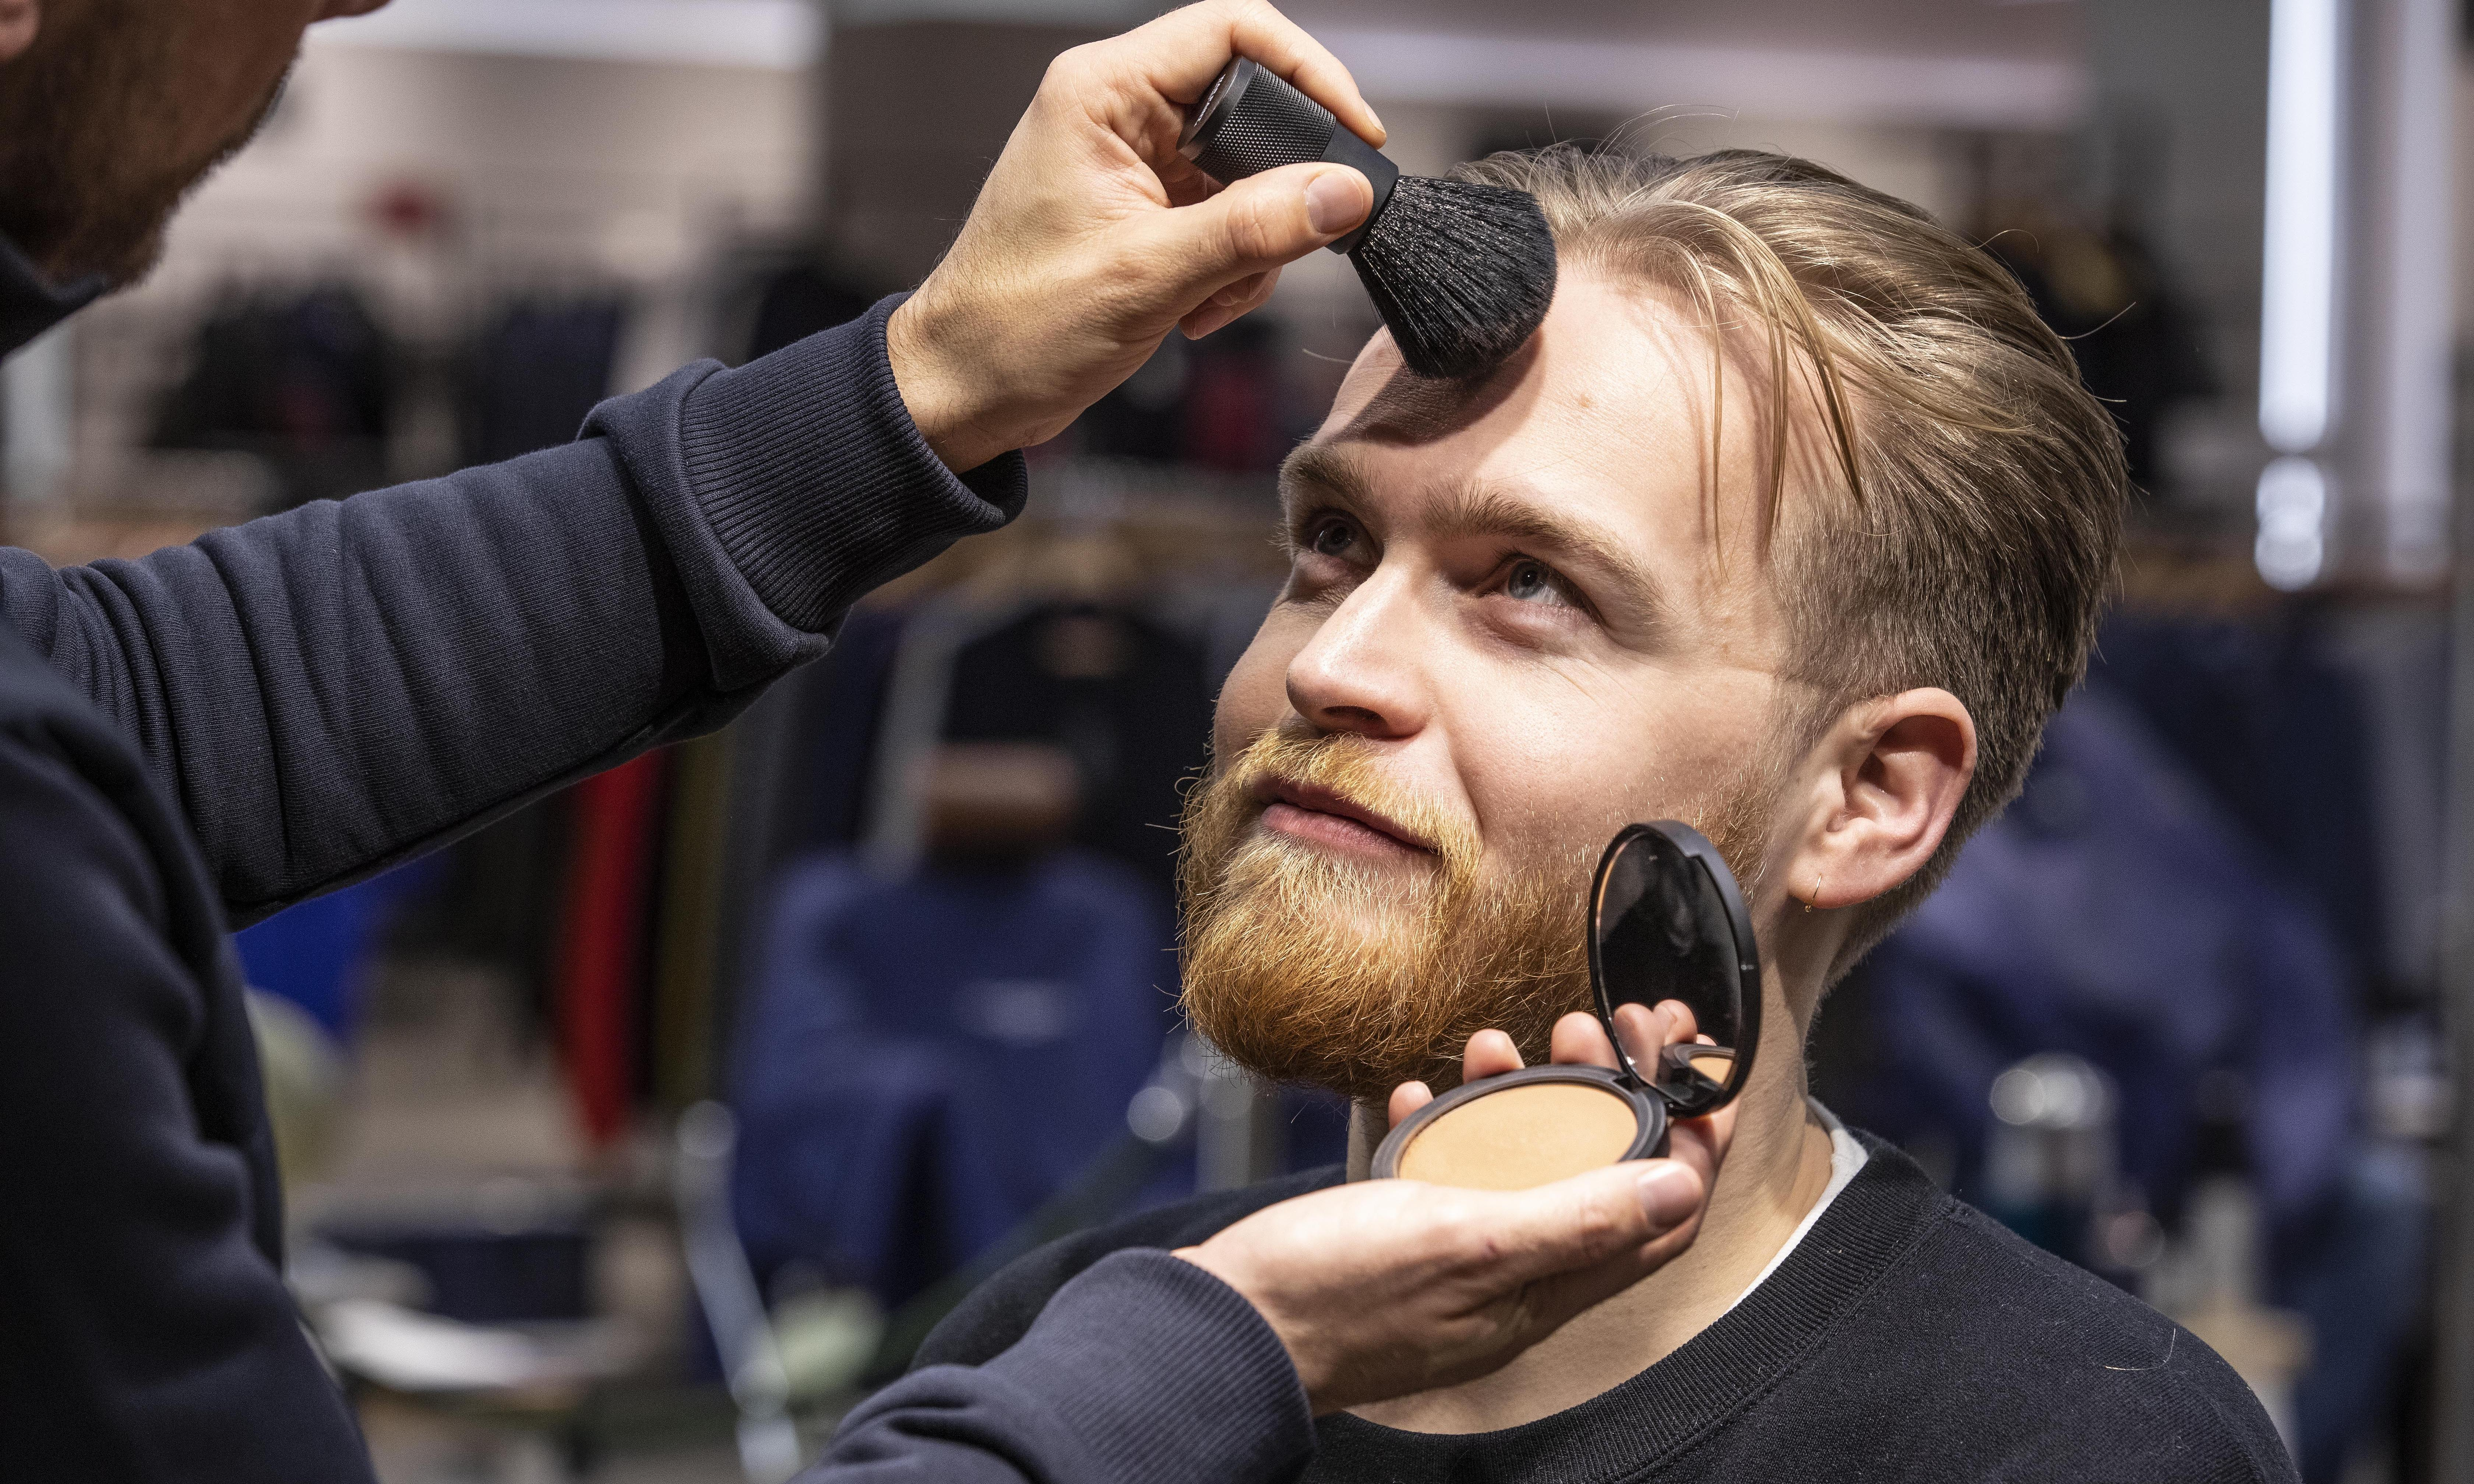 Male makeup signals a move away from rigid gender roles – but there's a catch